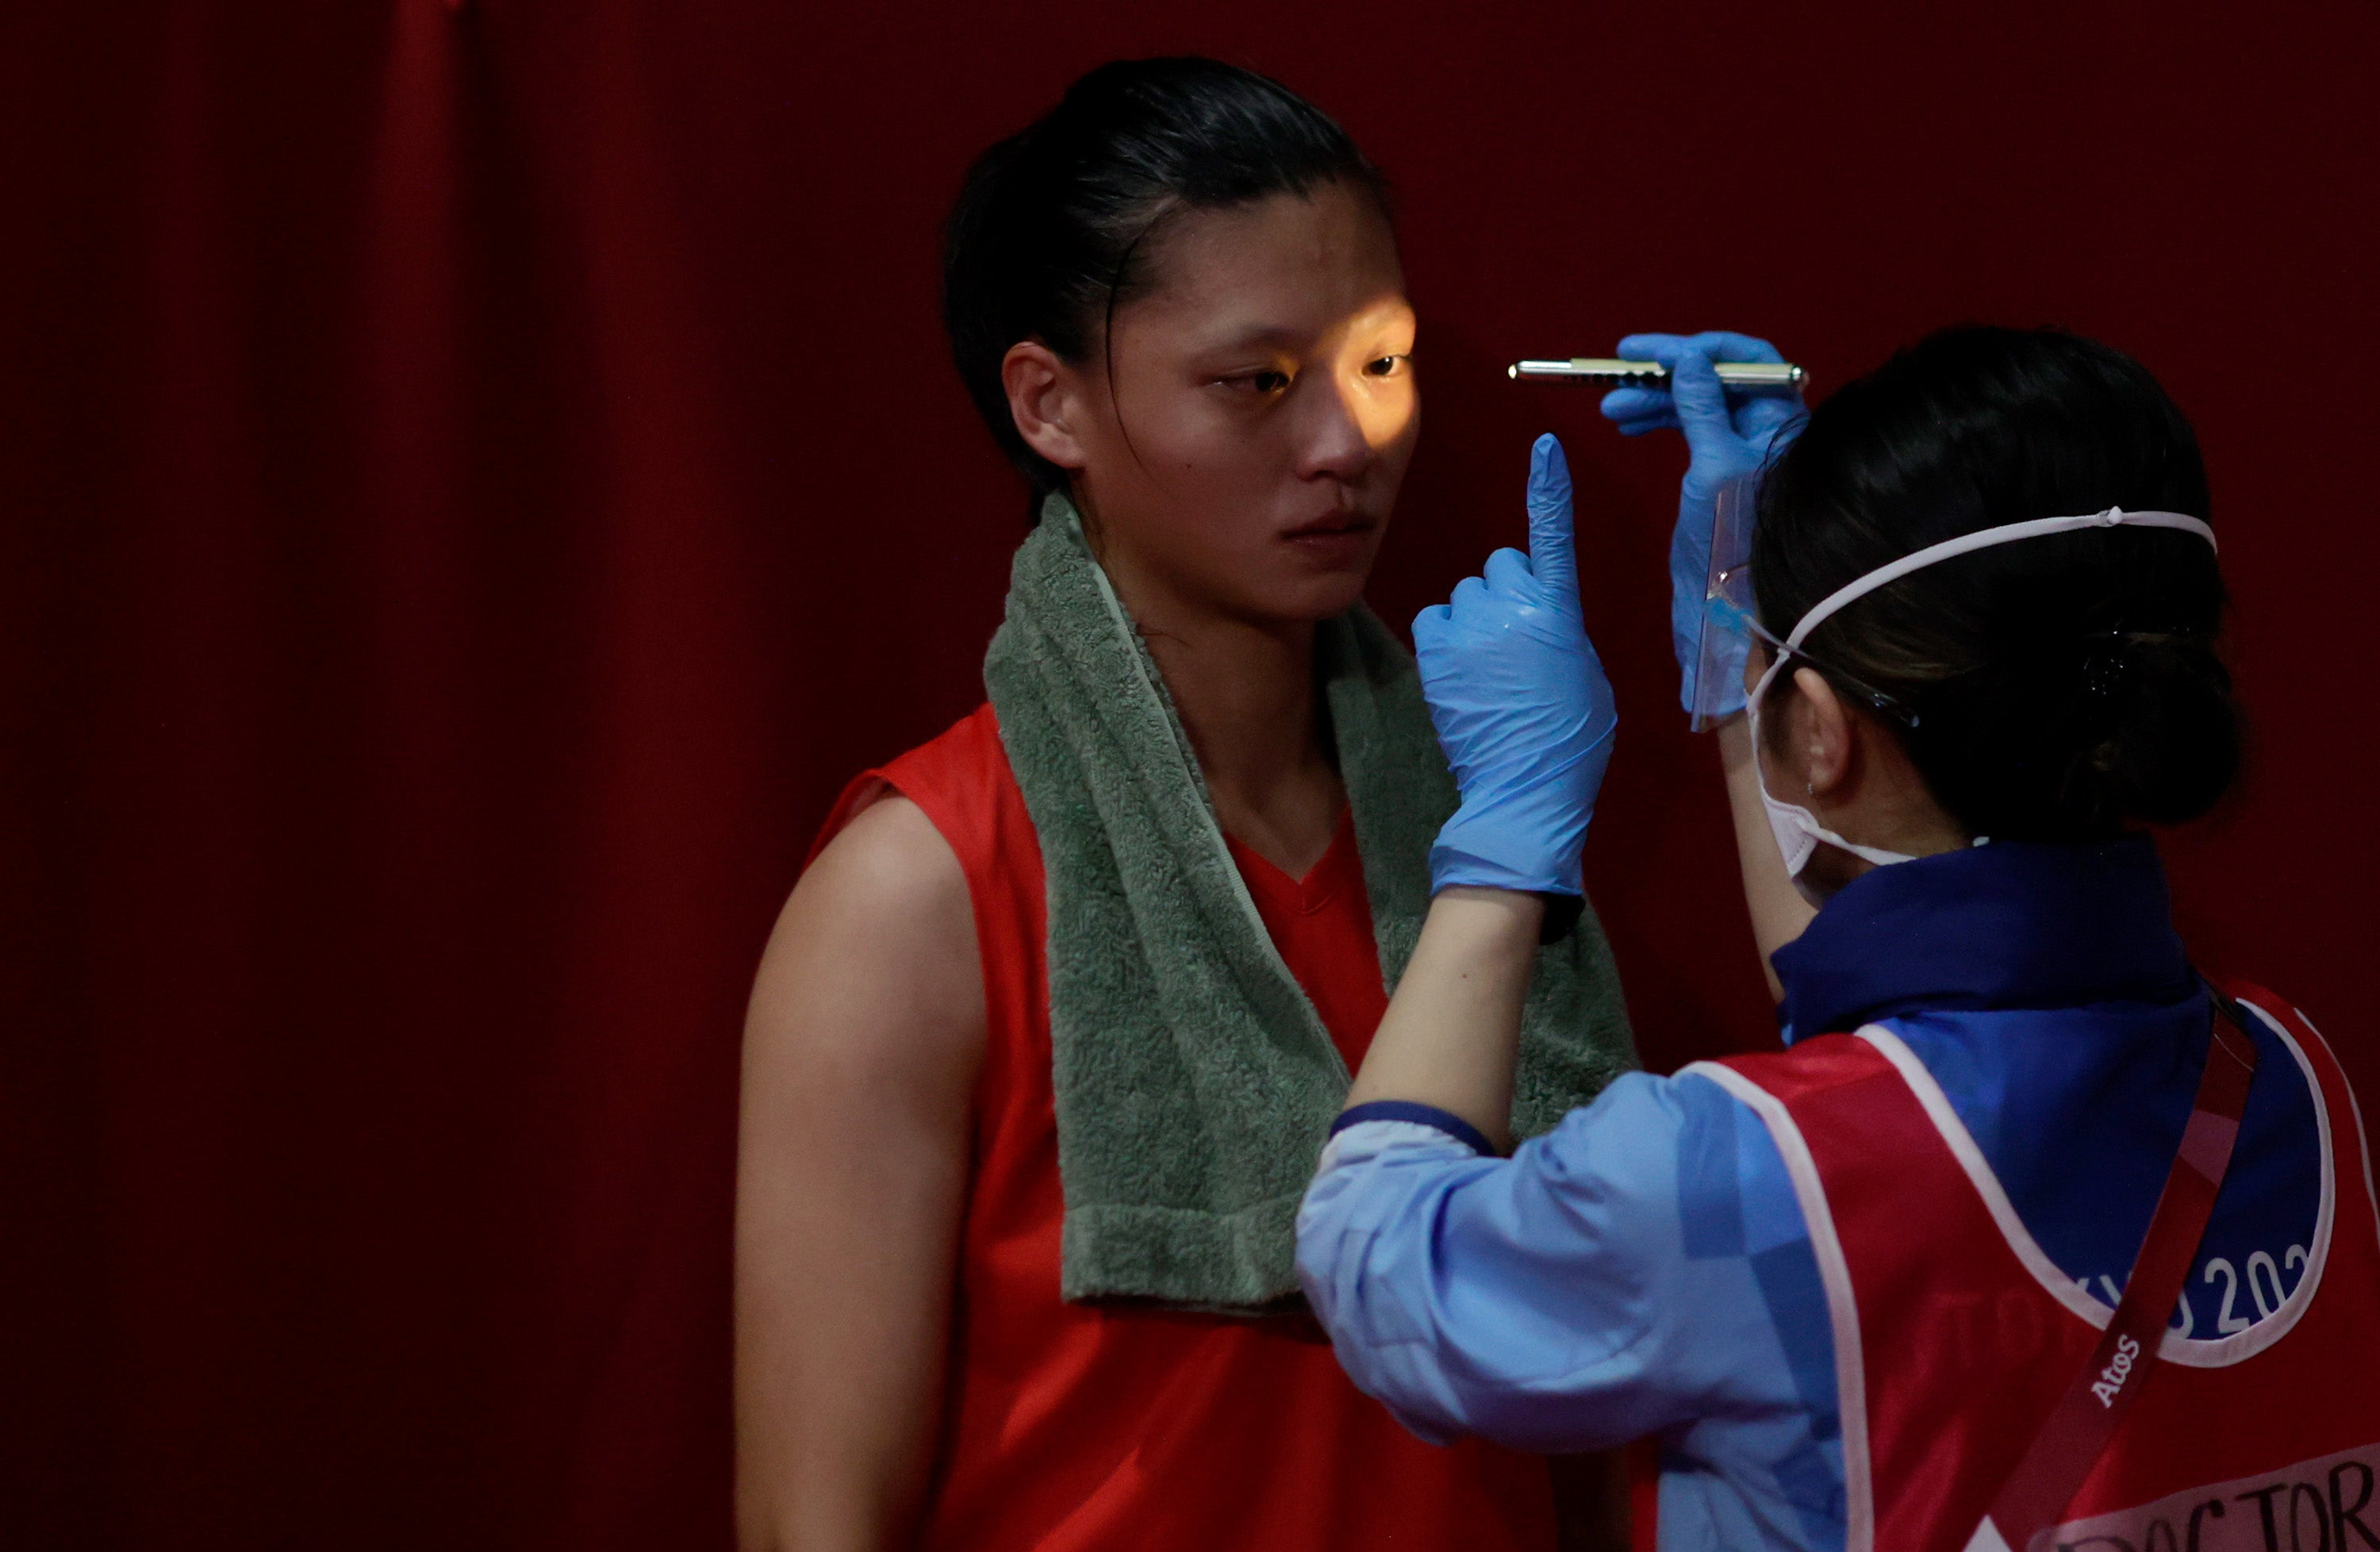 A doctor examines an athlete for injuries during a boxing match at the Tokyo Olympics in July 2021.